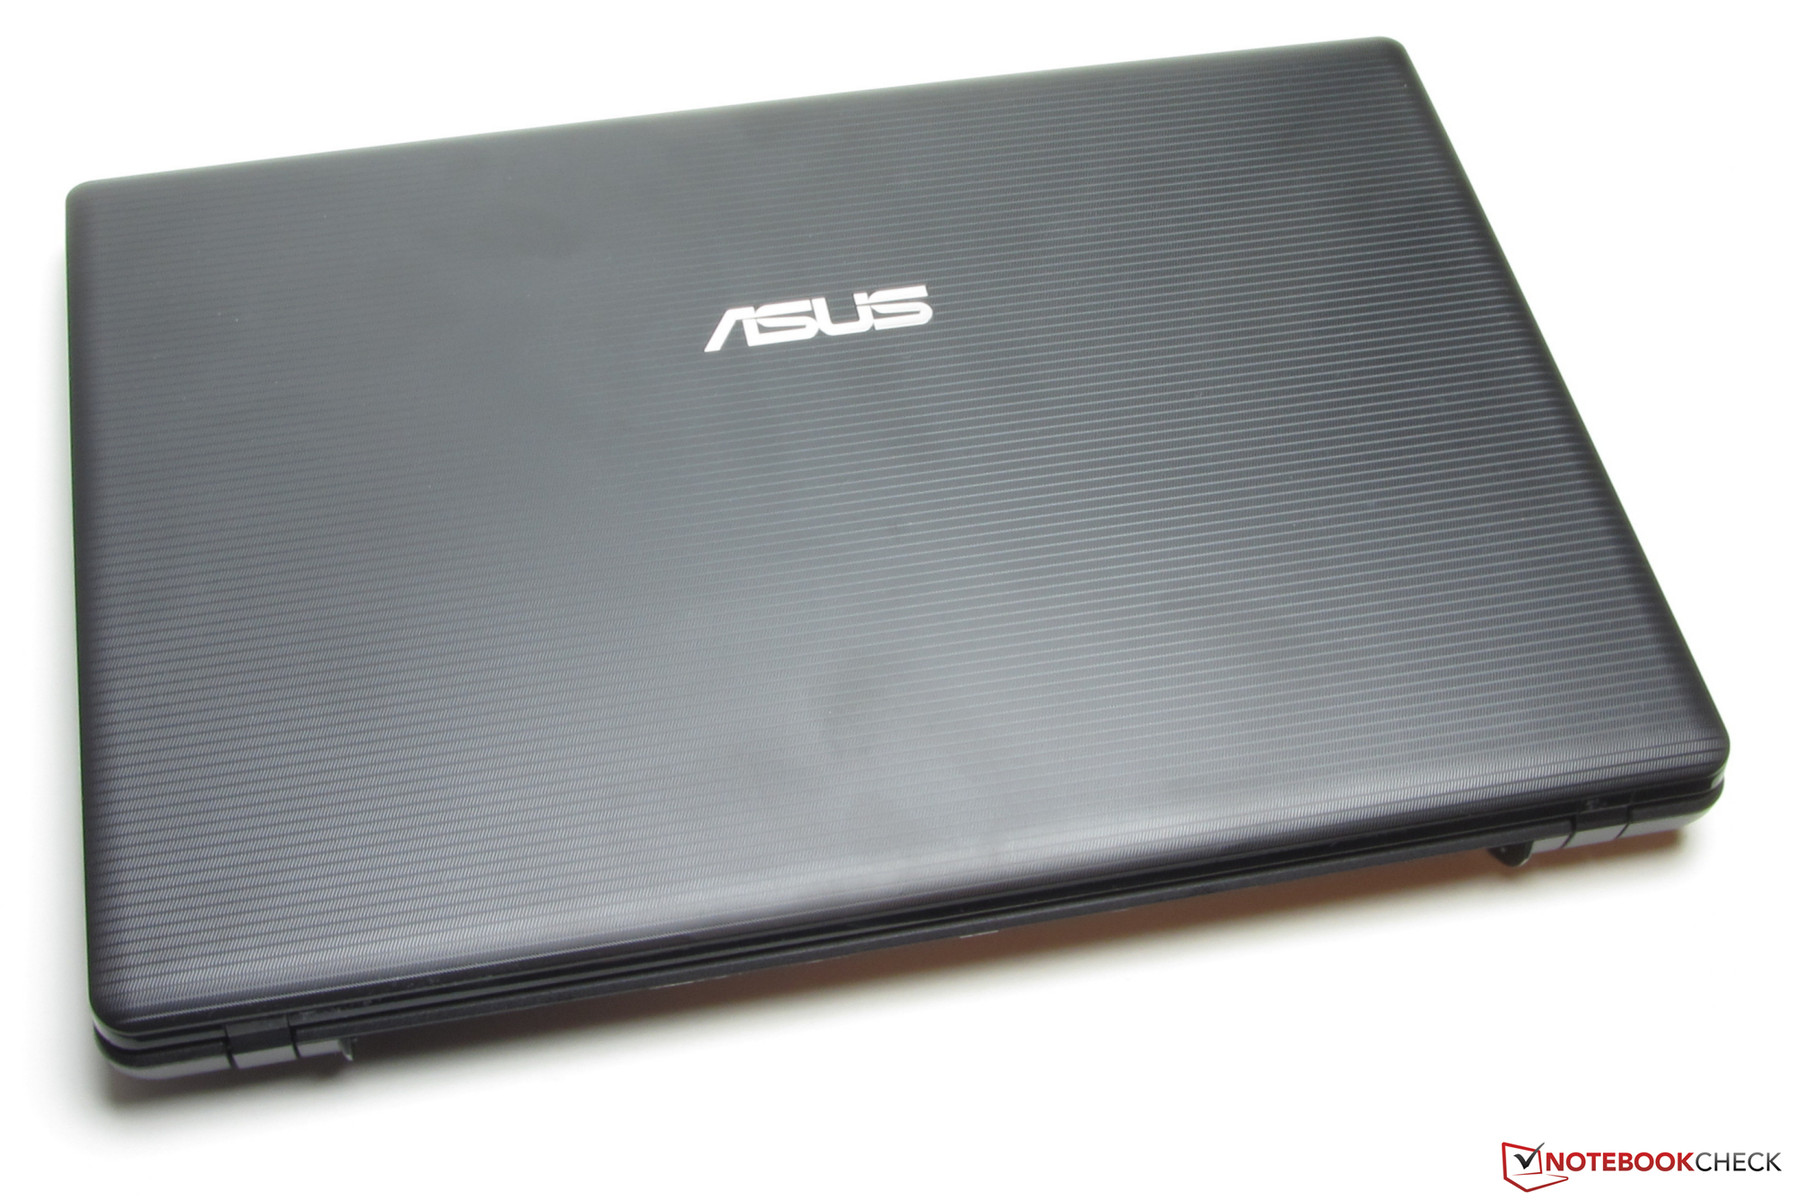 ASUS X55U ATI Display Driver for PC